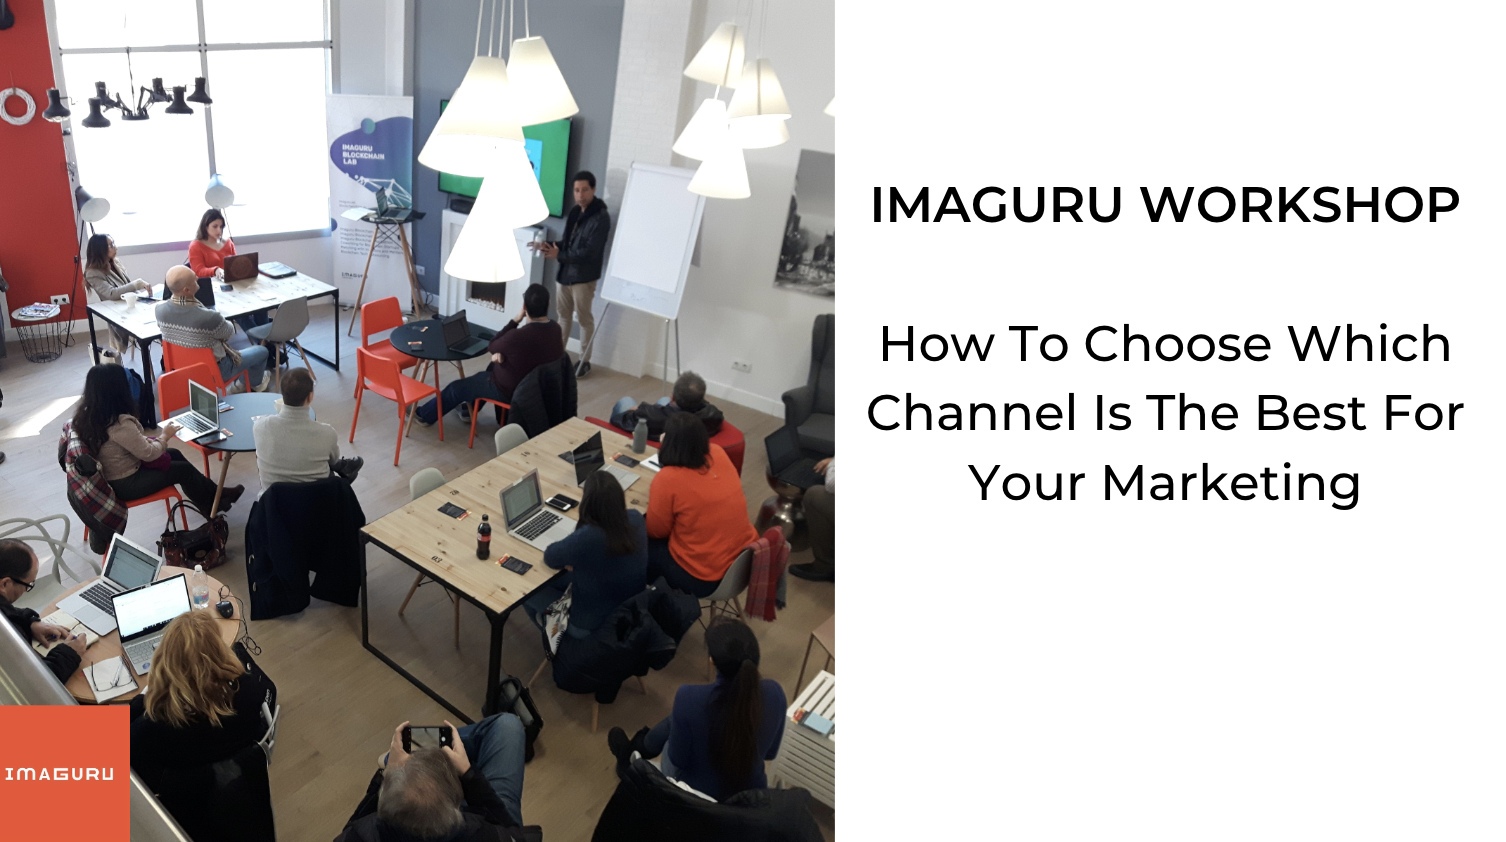 Workshop: How To Choose Which Channel Is The Best For Your Marketing